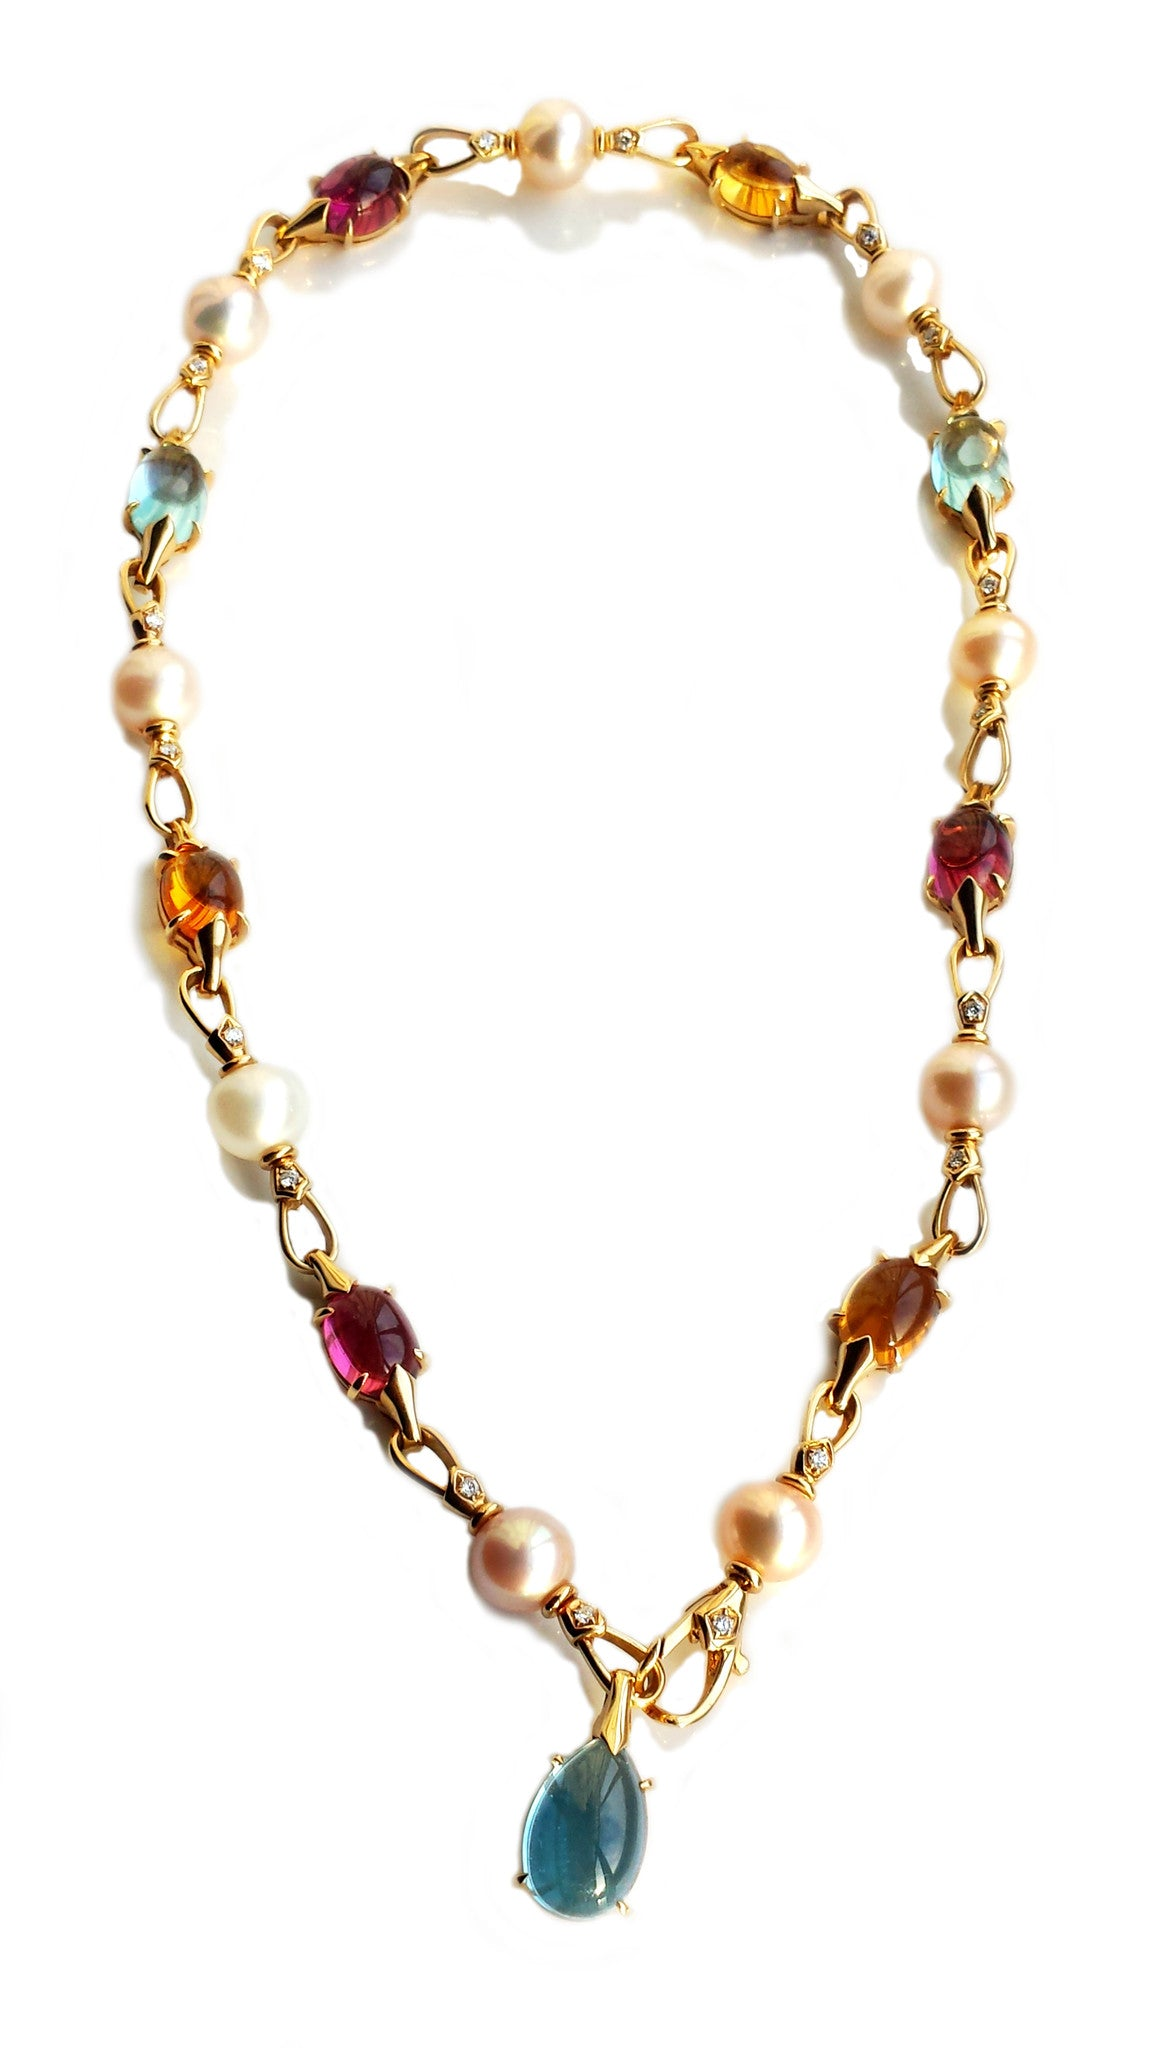 Bulgari Bvlgari Diamond, Pearl, Topaz, Tourmaline & Citrine Choker / Necklace in 18k Gold